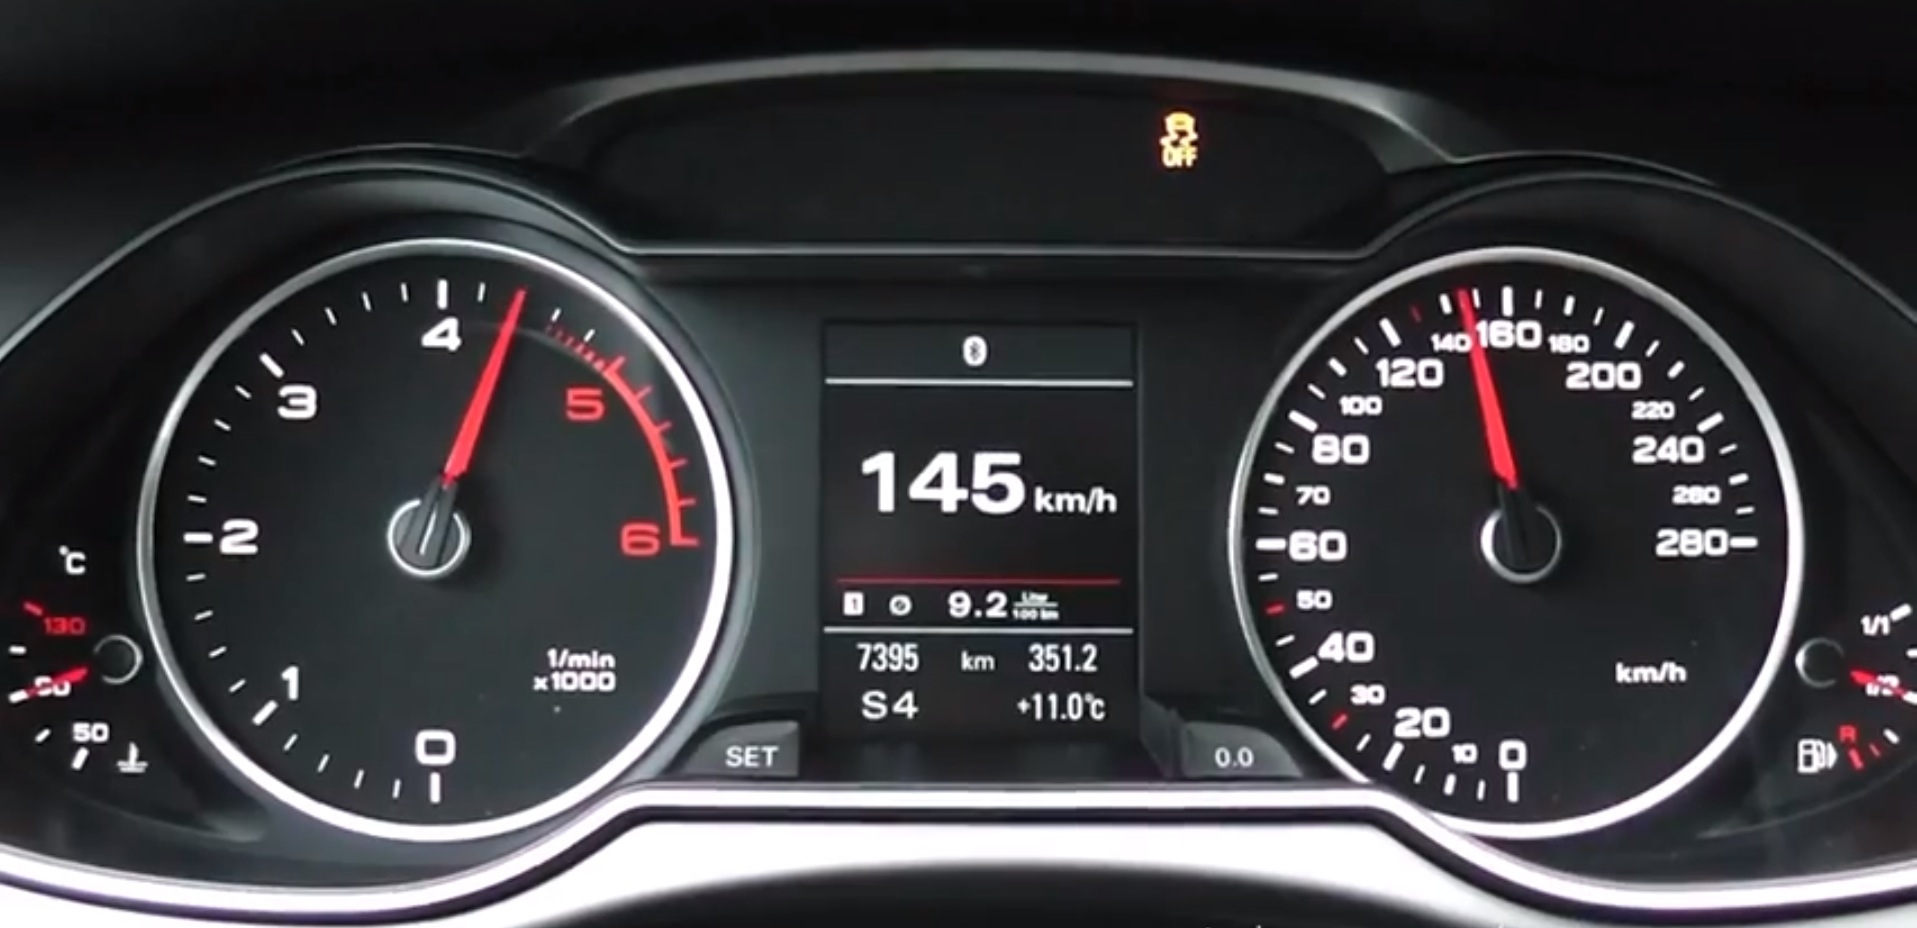 2014 Audi A4 3 0 Tdi 245 Hp Acceleration Test With Launch Control